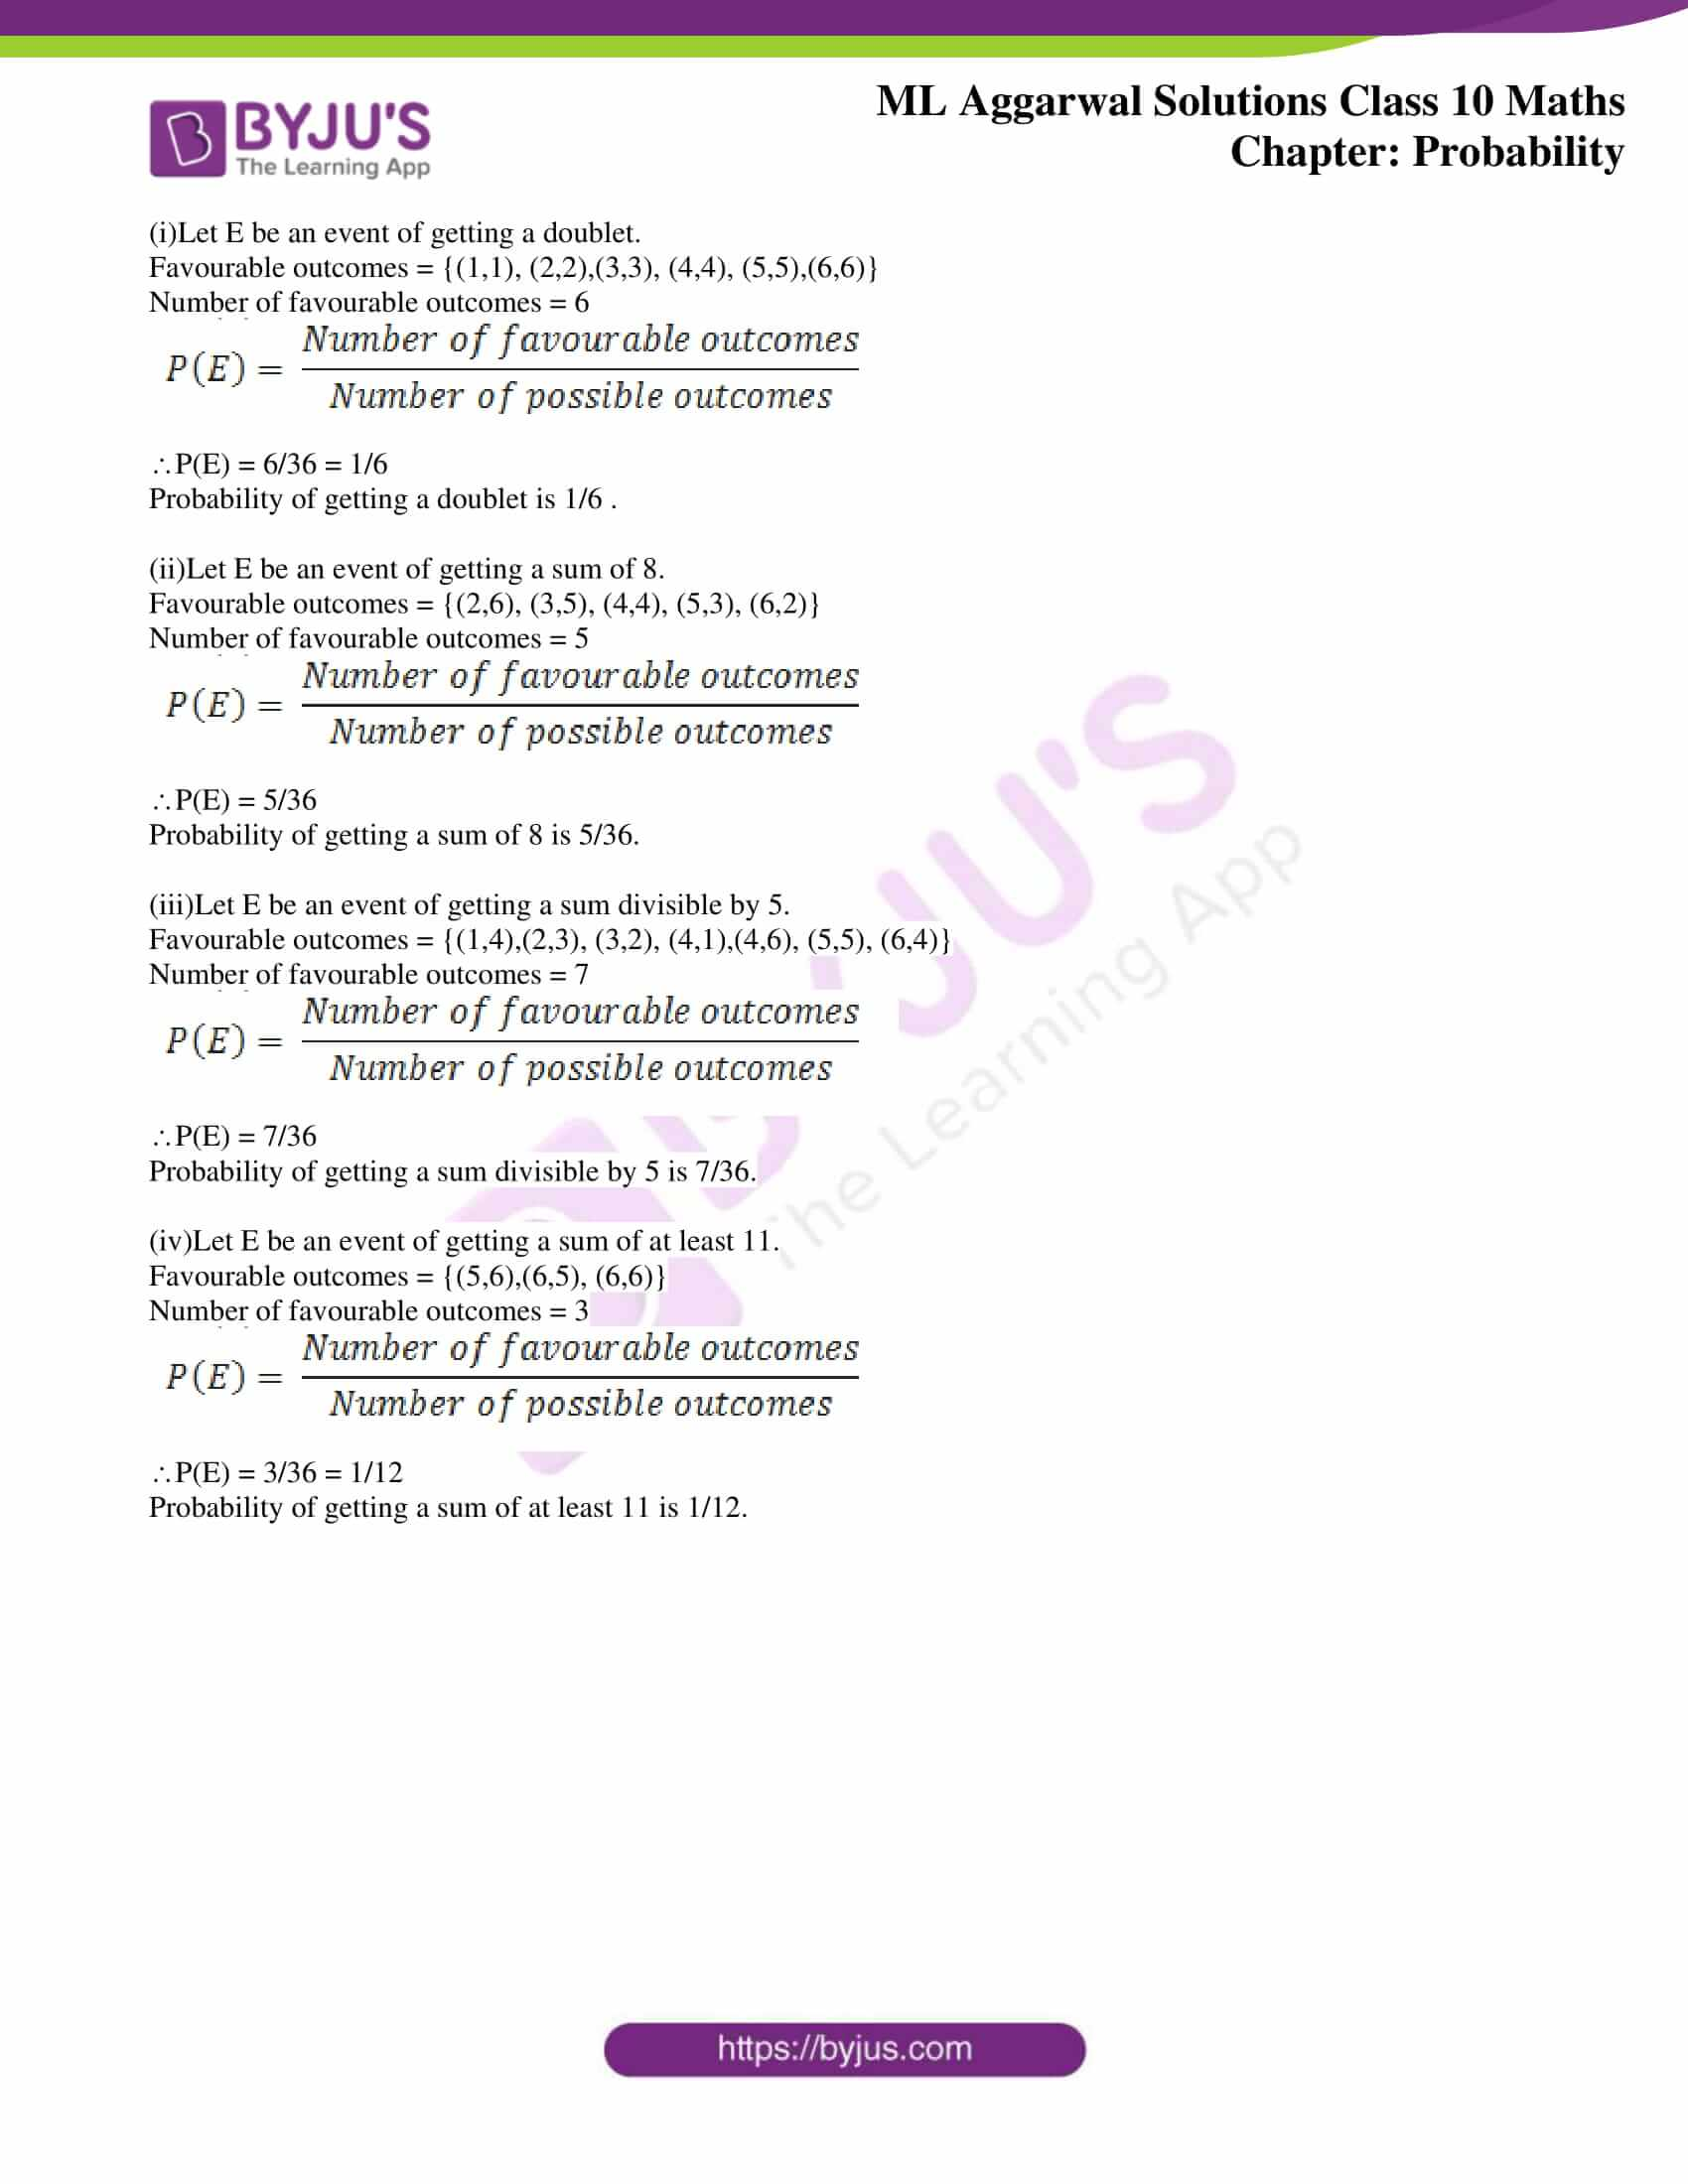 ml aggarwal solutions class 10 maths chapter 22 30